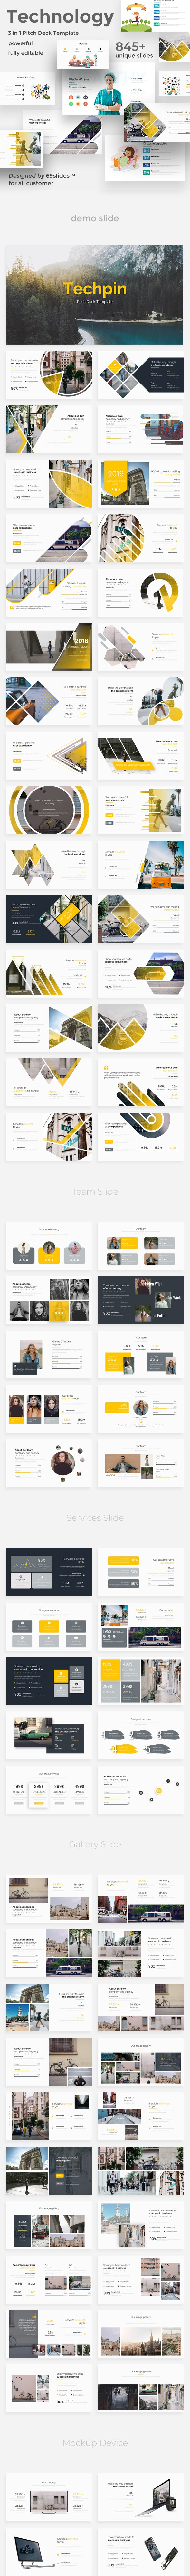 3 in 1 Technology Bundle Powerpoint Template - Creative PowerPoint Templates